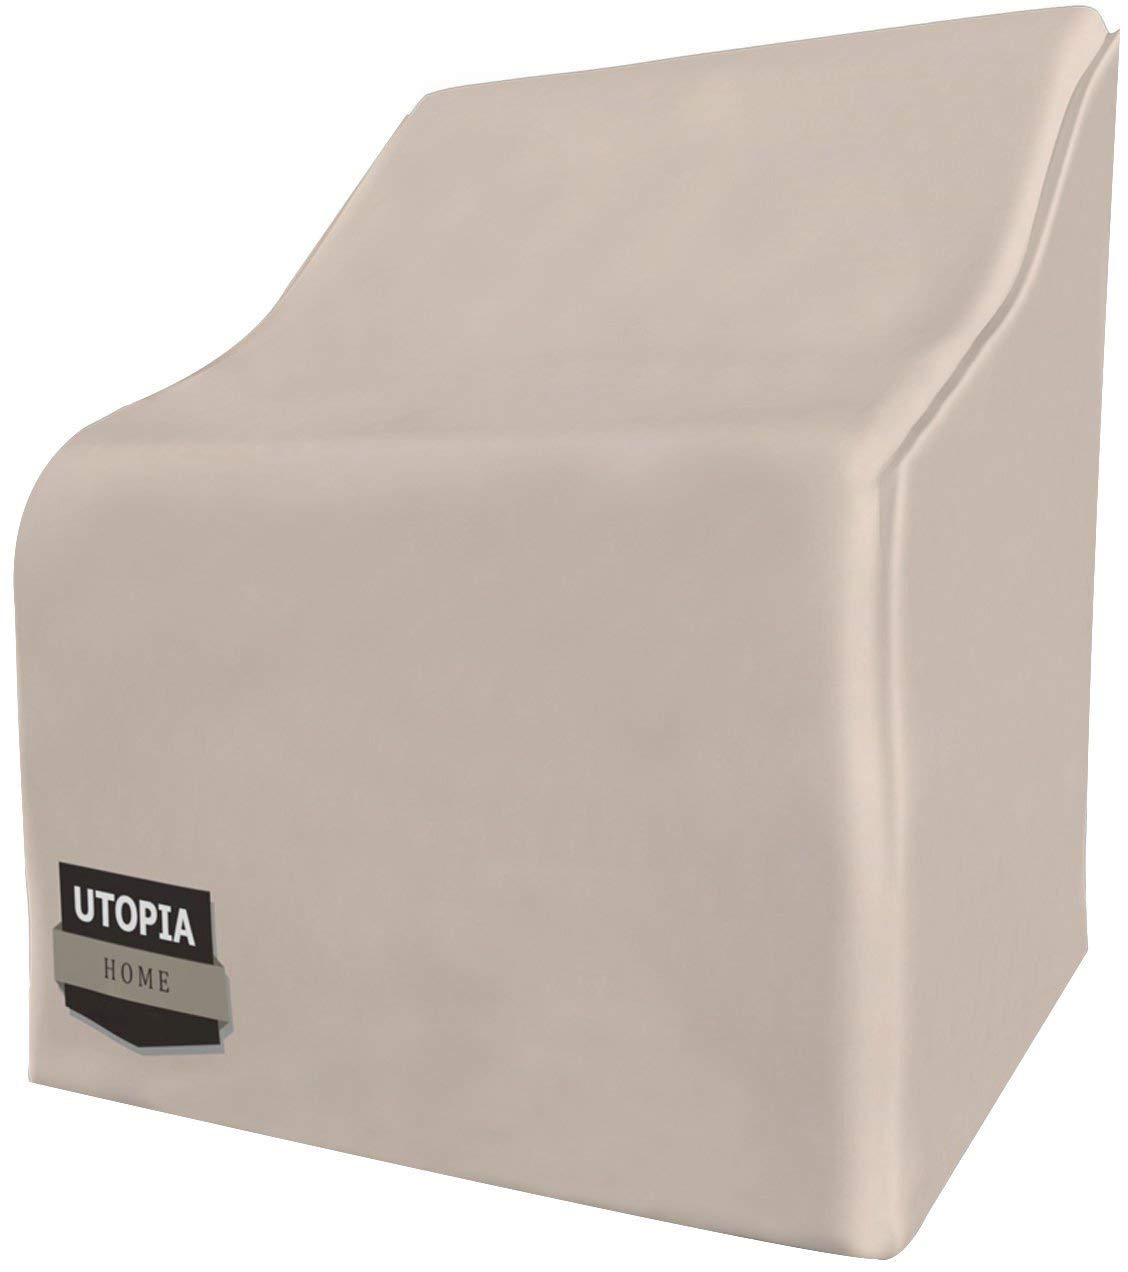 Utopia home outdoor furniture covers with 35 inches high double stitching water resistant outdoor chair covers medium patio covers with click close